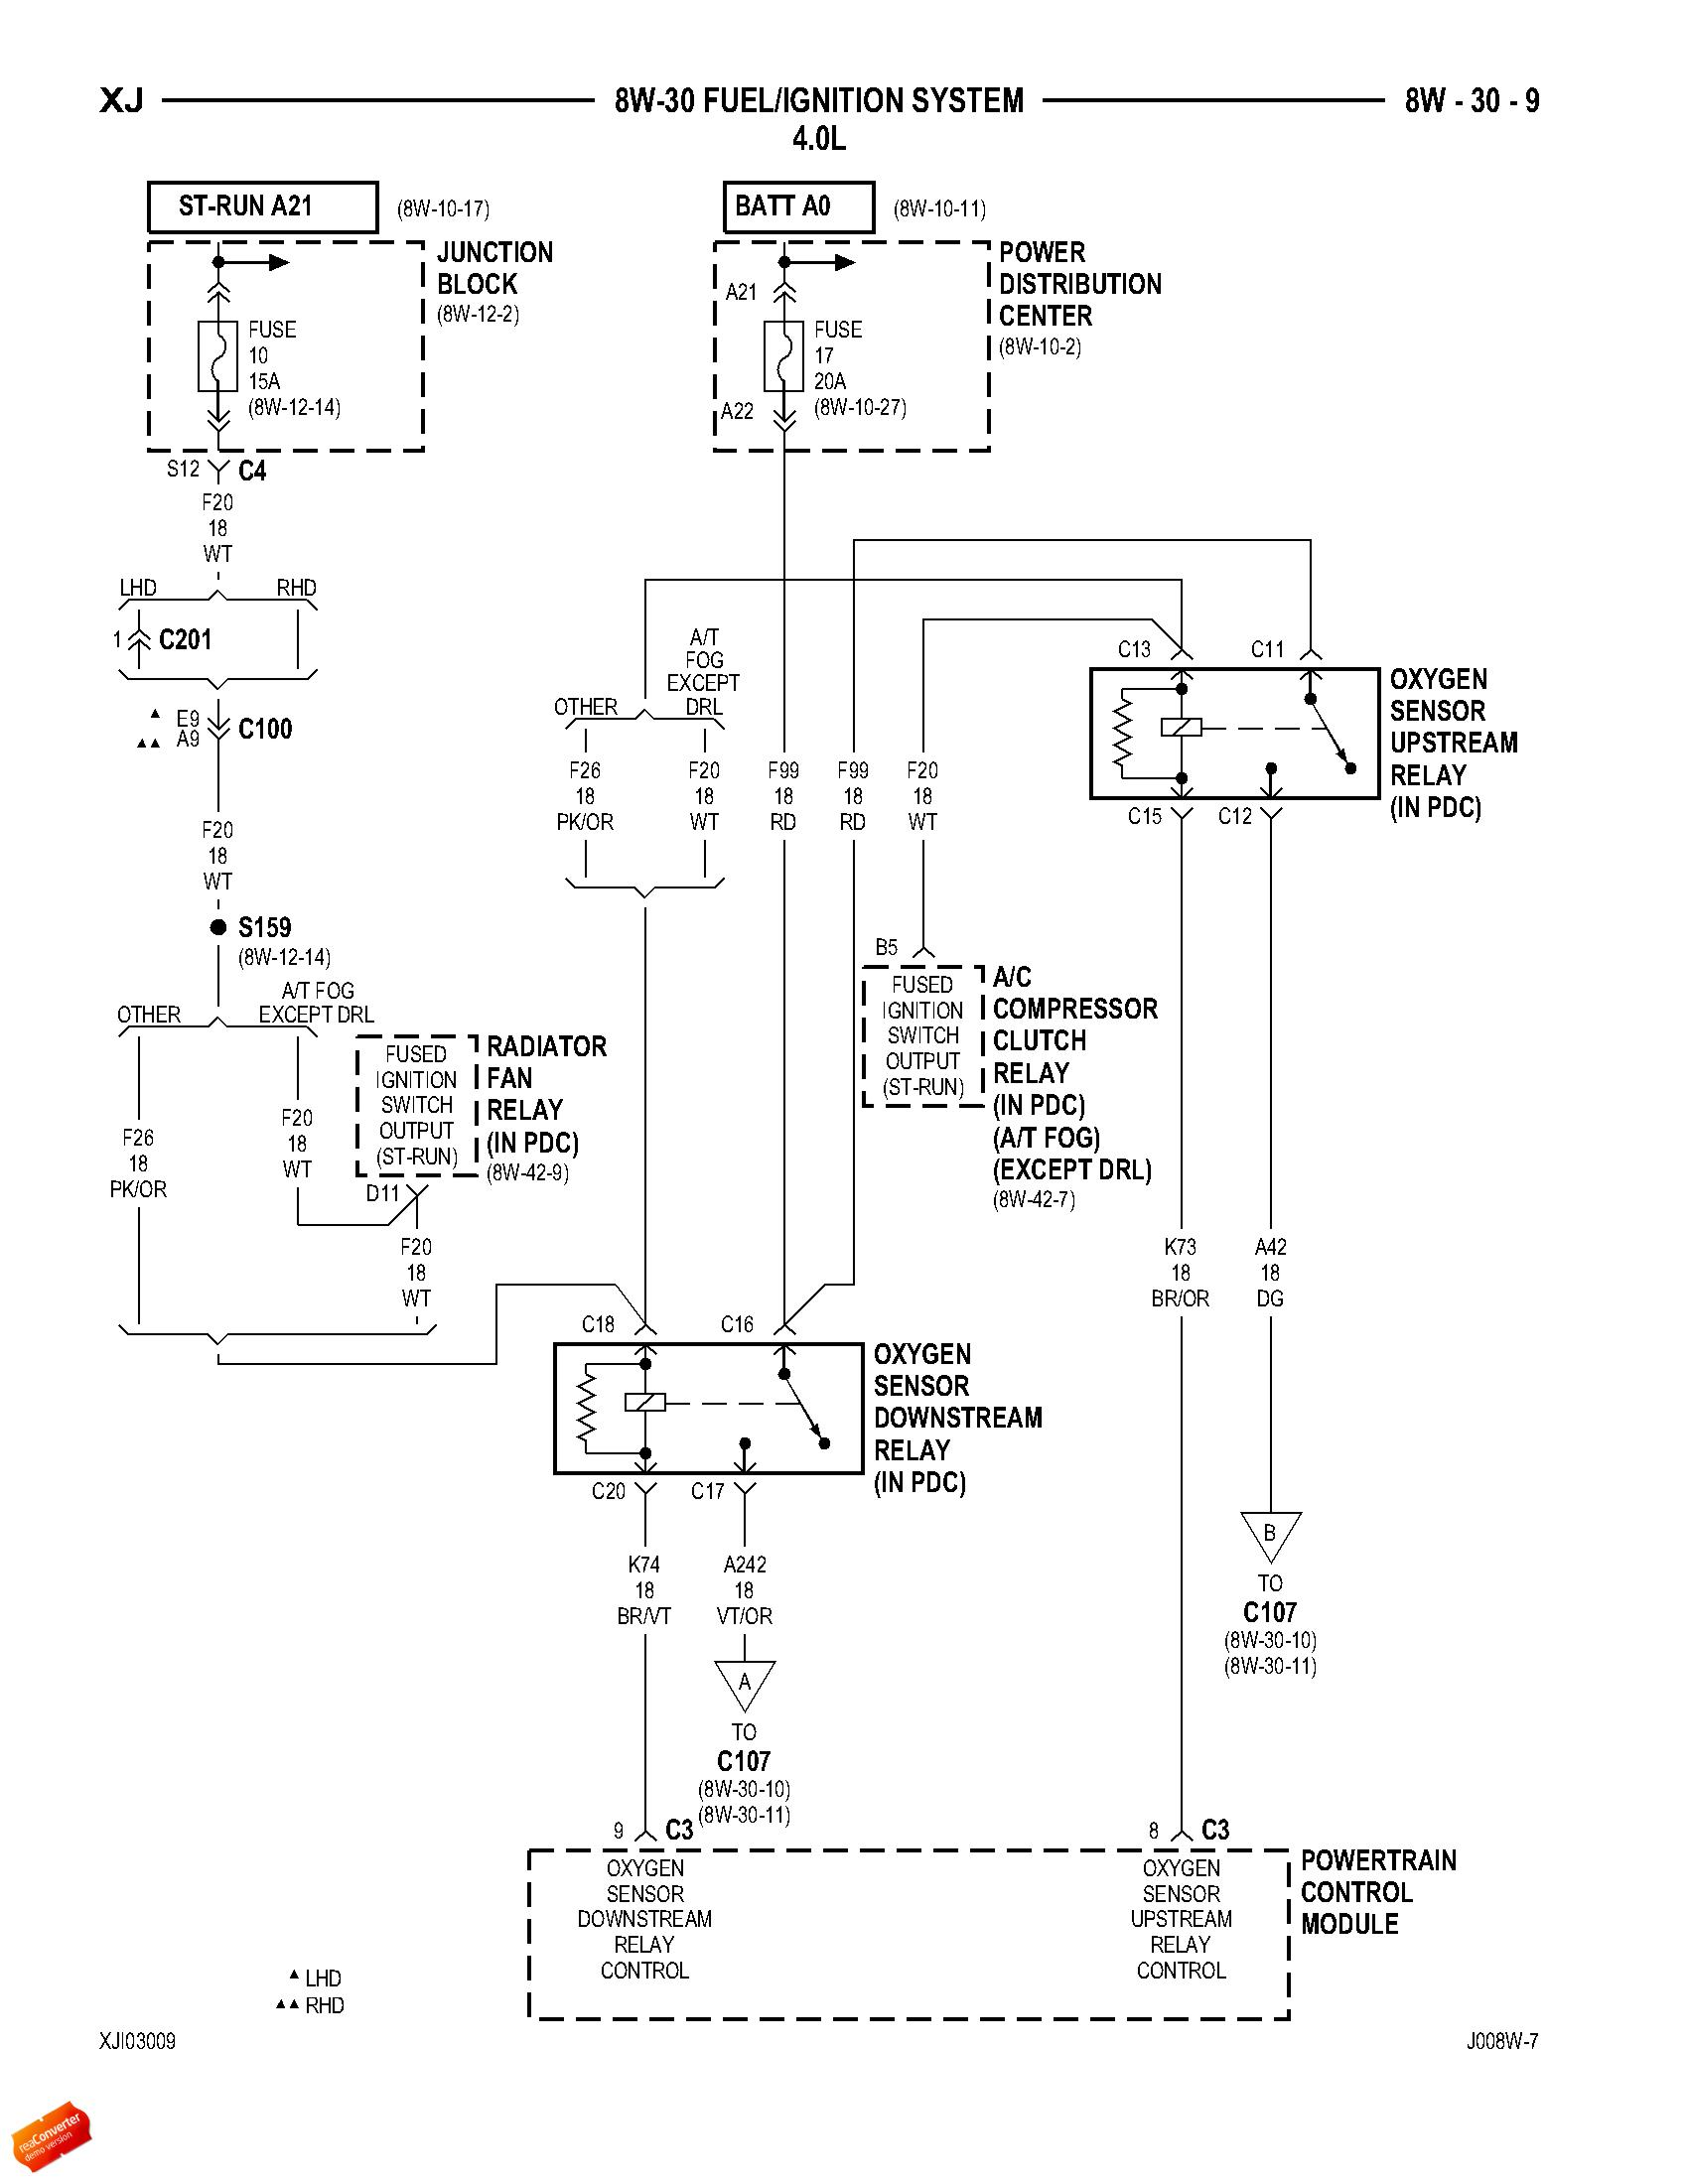 99 jeep grand cherokee laredo wiring diagram 1999 gmc sierra fuel pump 3901 o2 sensor engine